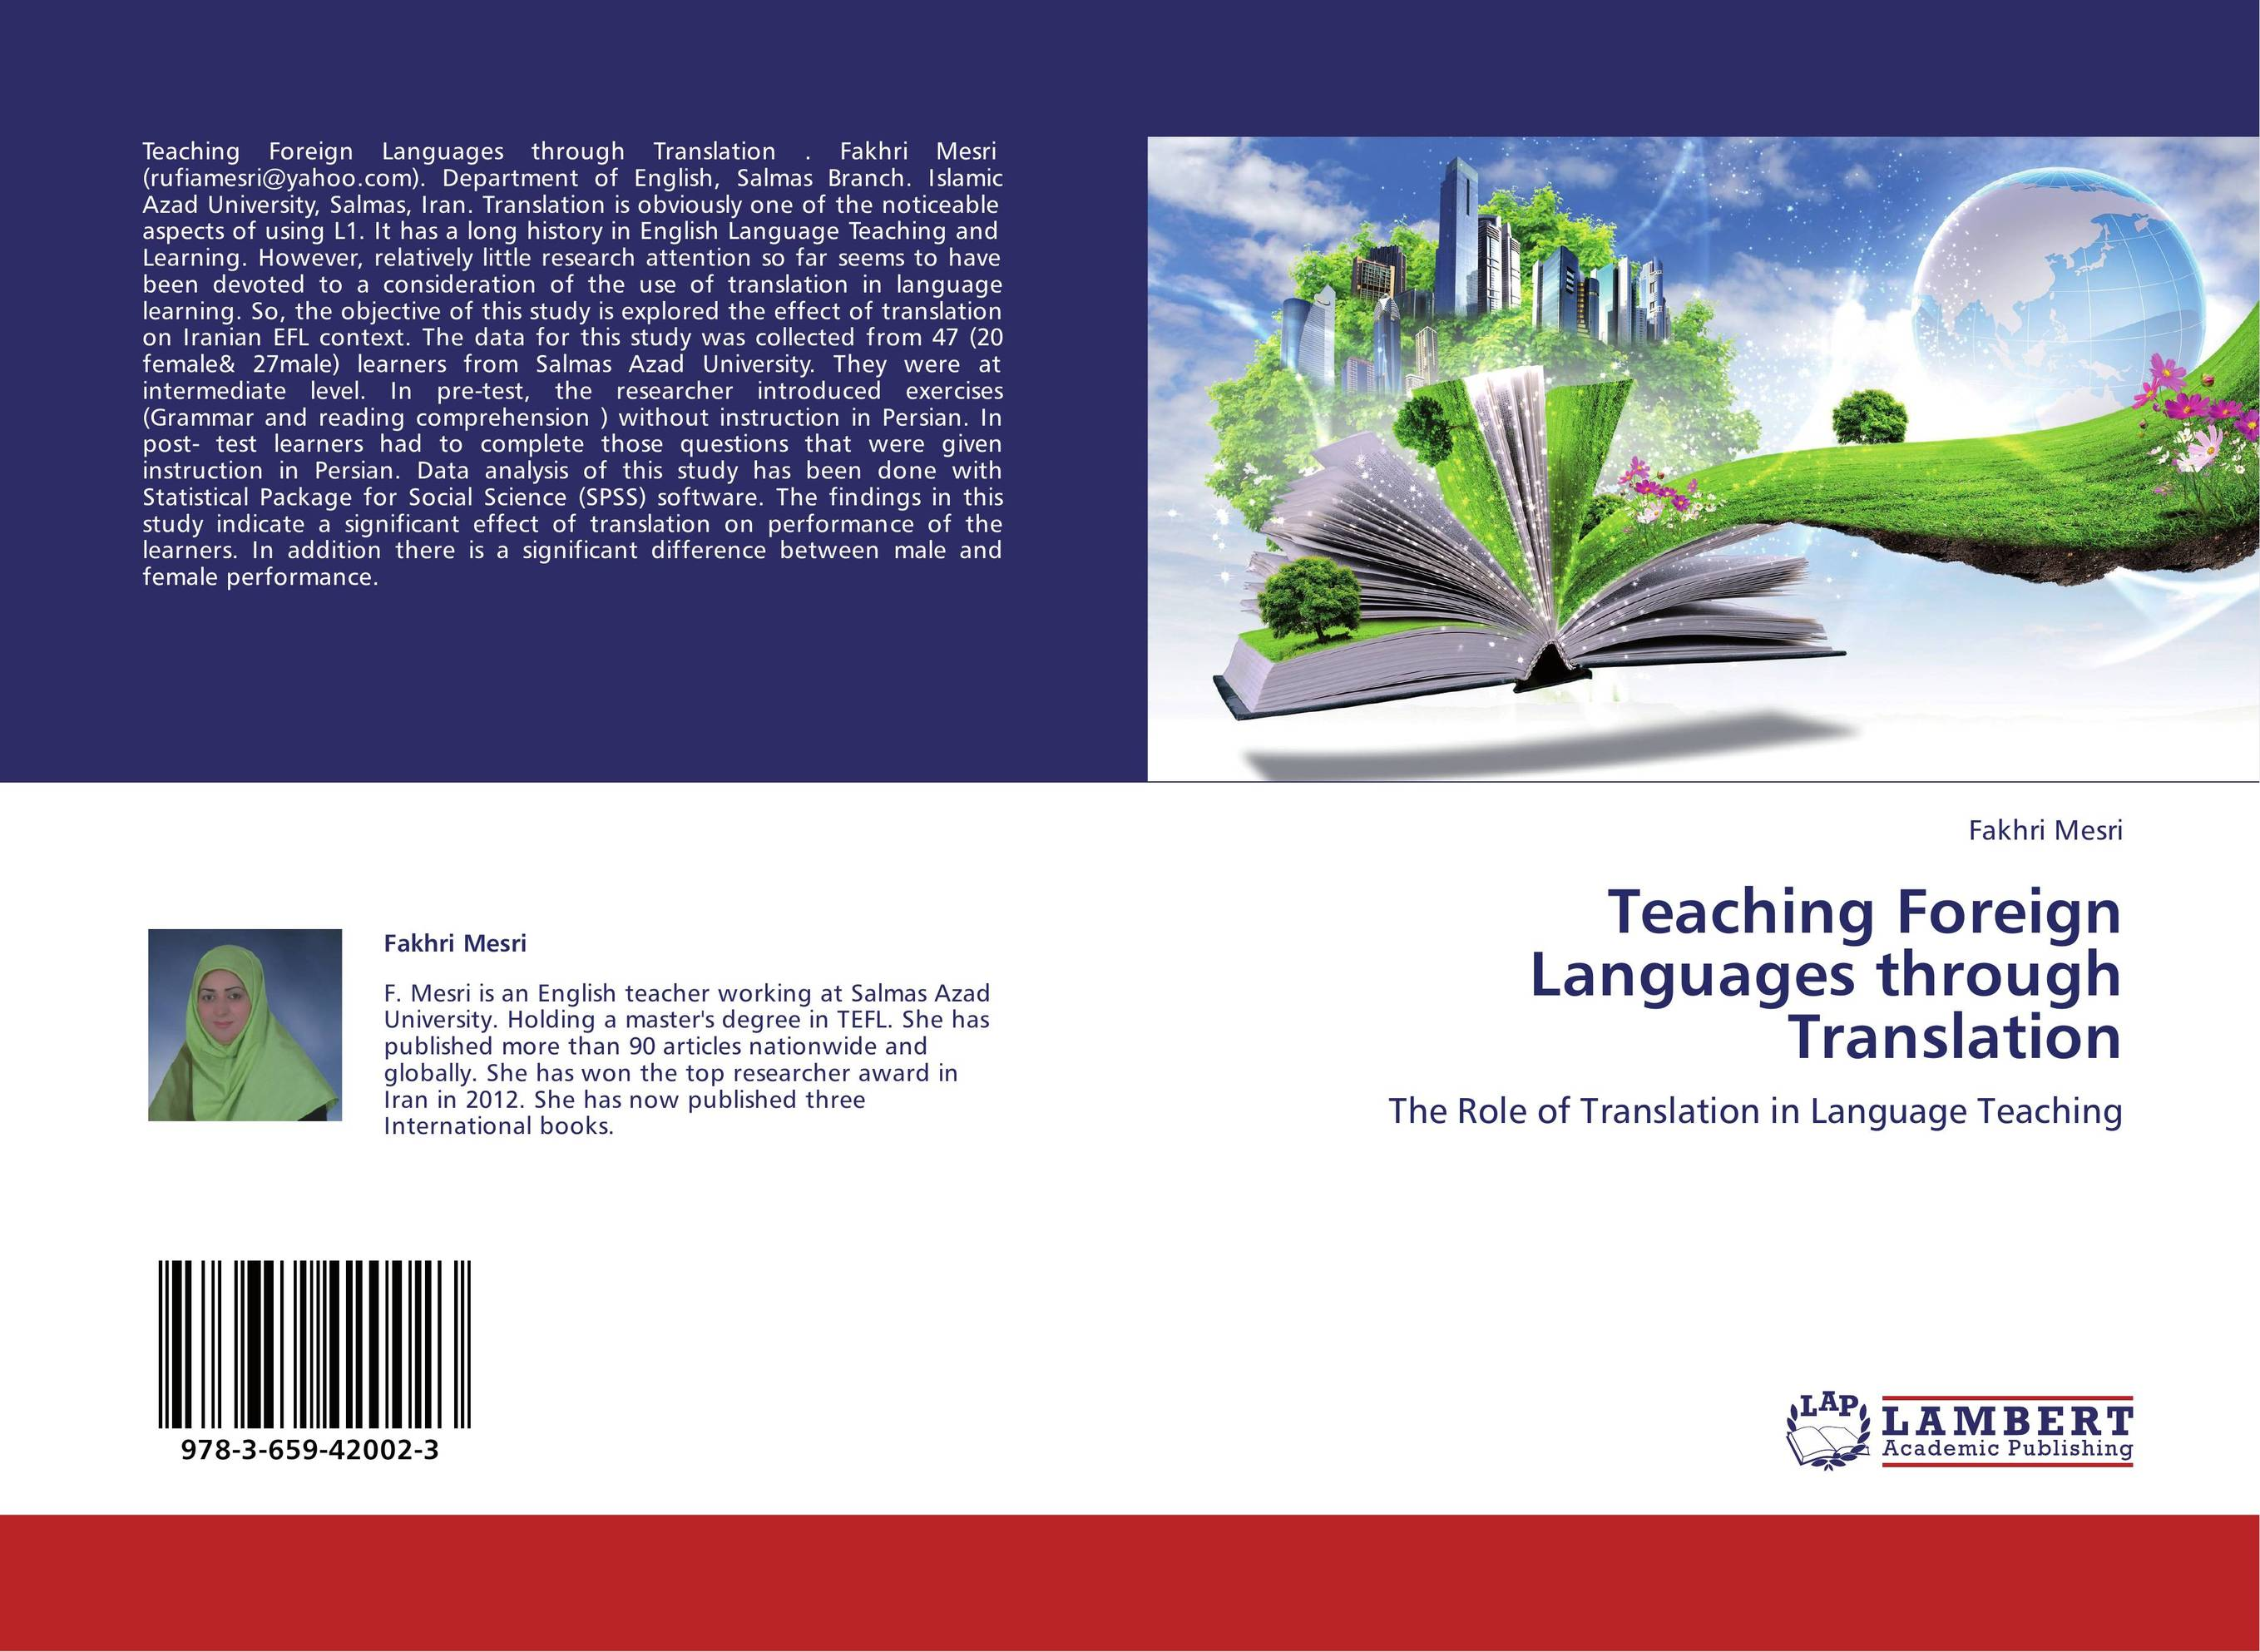 teaching english through translation The use of translation in the teaching of english has been seen as a positive asset by some and as unhelpful one by others however, in our experience as teachers, we have drawn the conclusion that translation, when used to promote learning, can be a very important tool in foreign language learning.